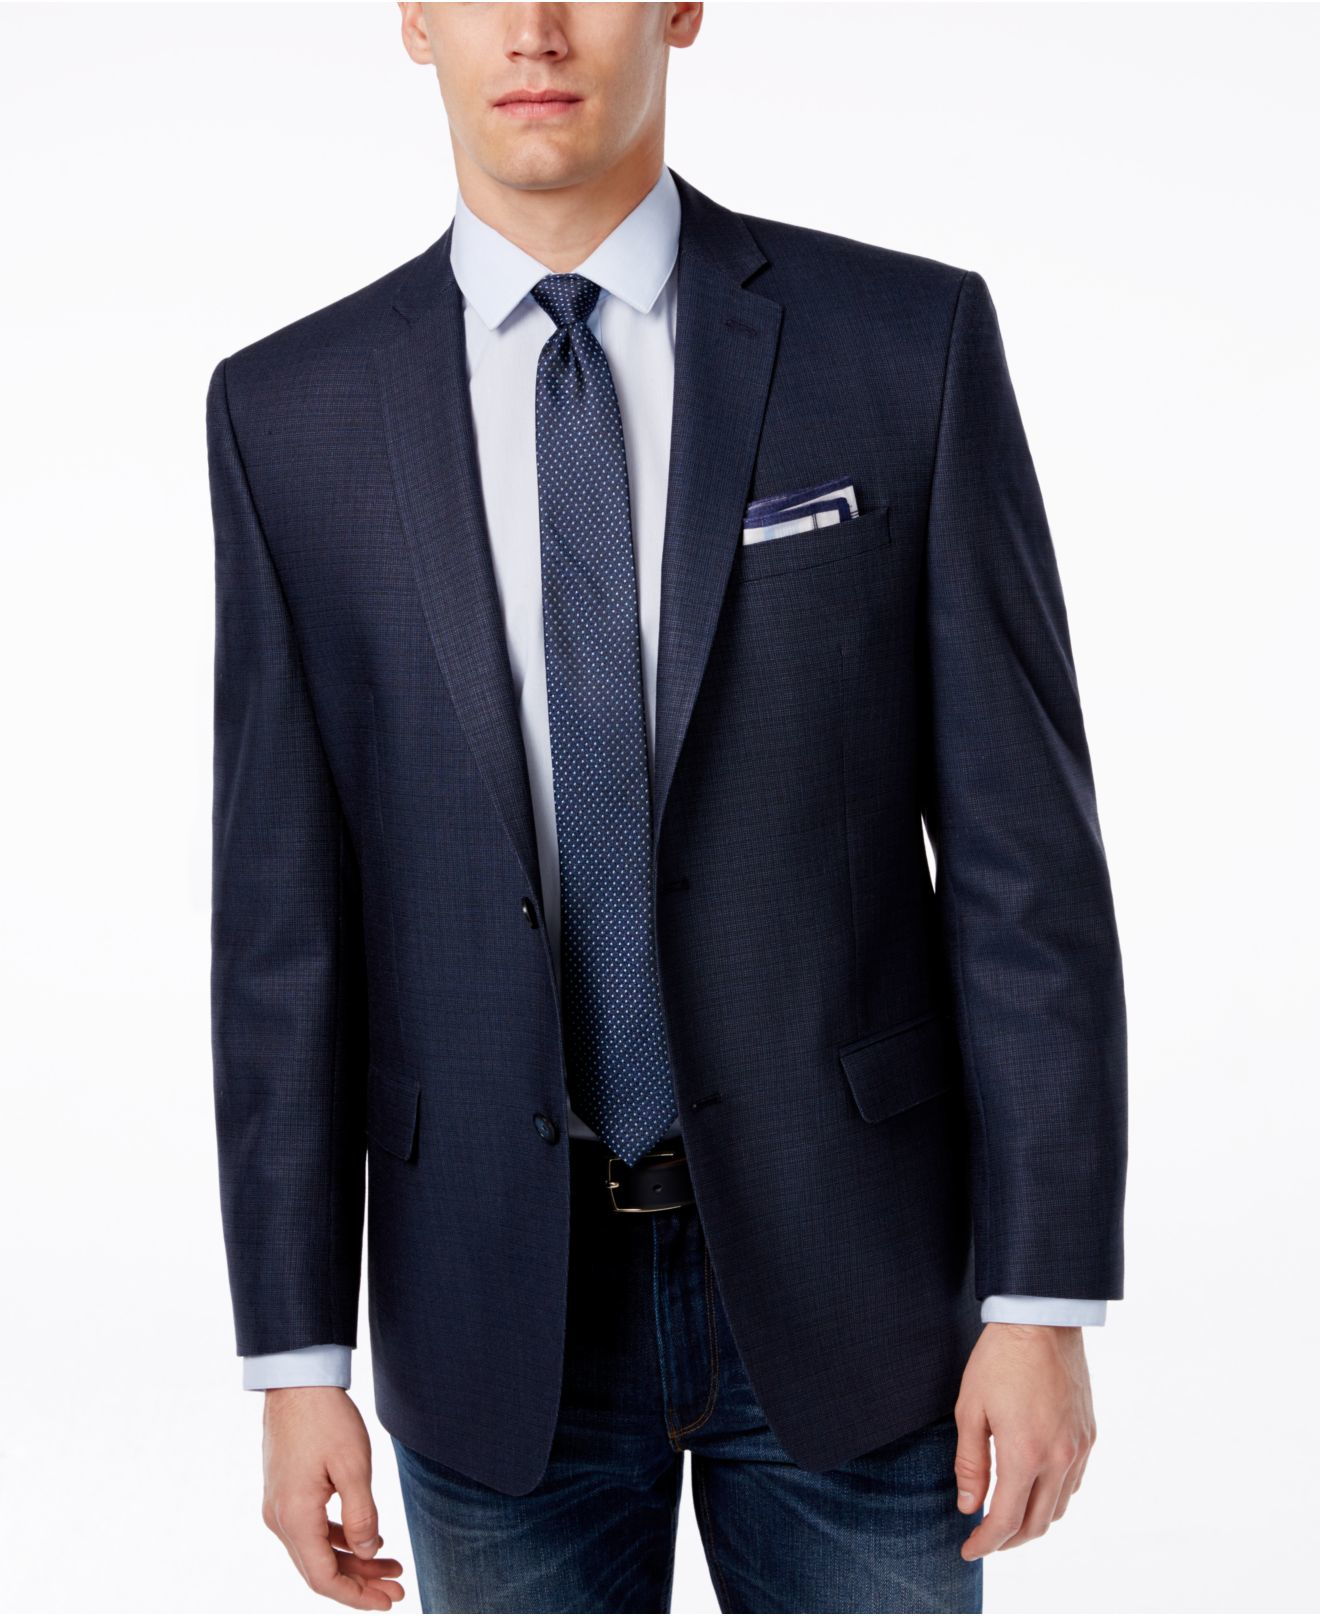 Shop Dillard's selection of men's blazers, sportcoats, and vests from your favorite brands like Brooks Brothers, Cremieux, Hugo Boss, and more.